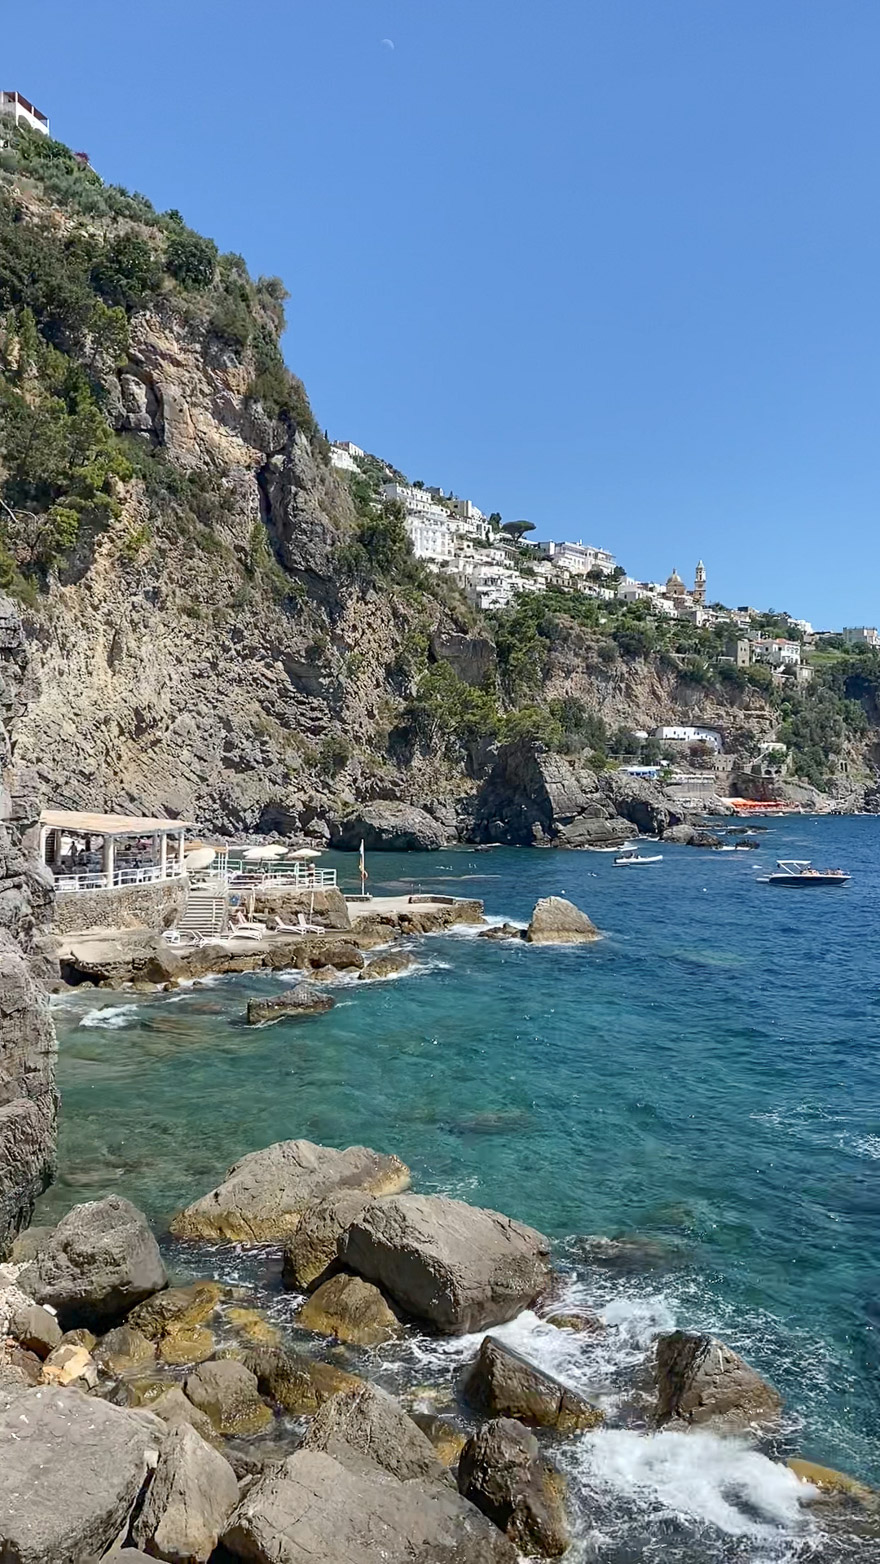 amalfi coast 26 - GUIDE - Visiting the Amalfi Coast during COVID